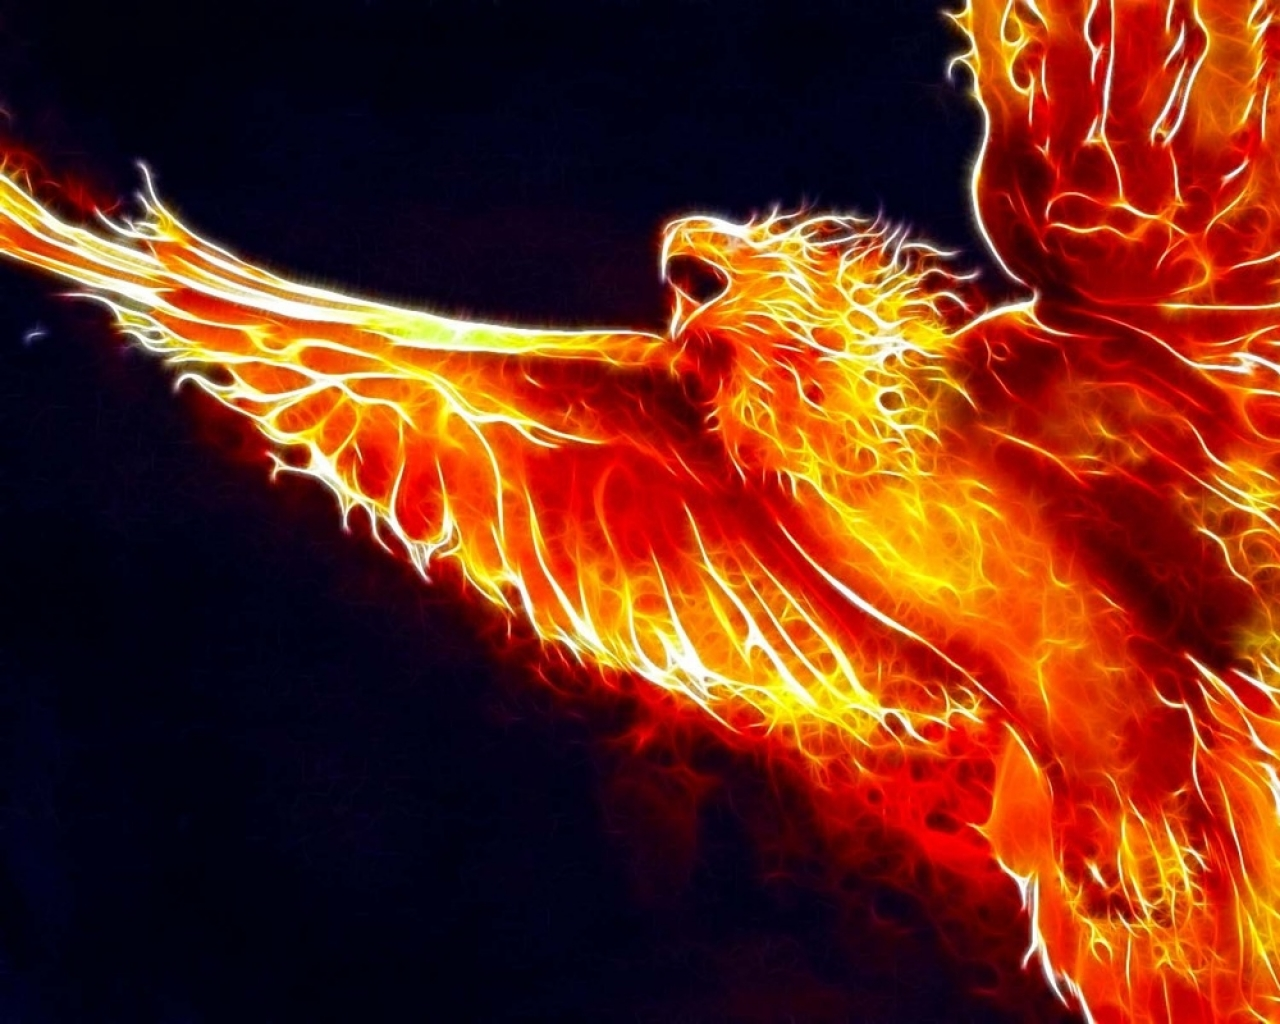 41 Phoenix Bird Hd Wallpaper On Wallpapersafari